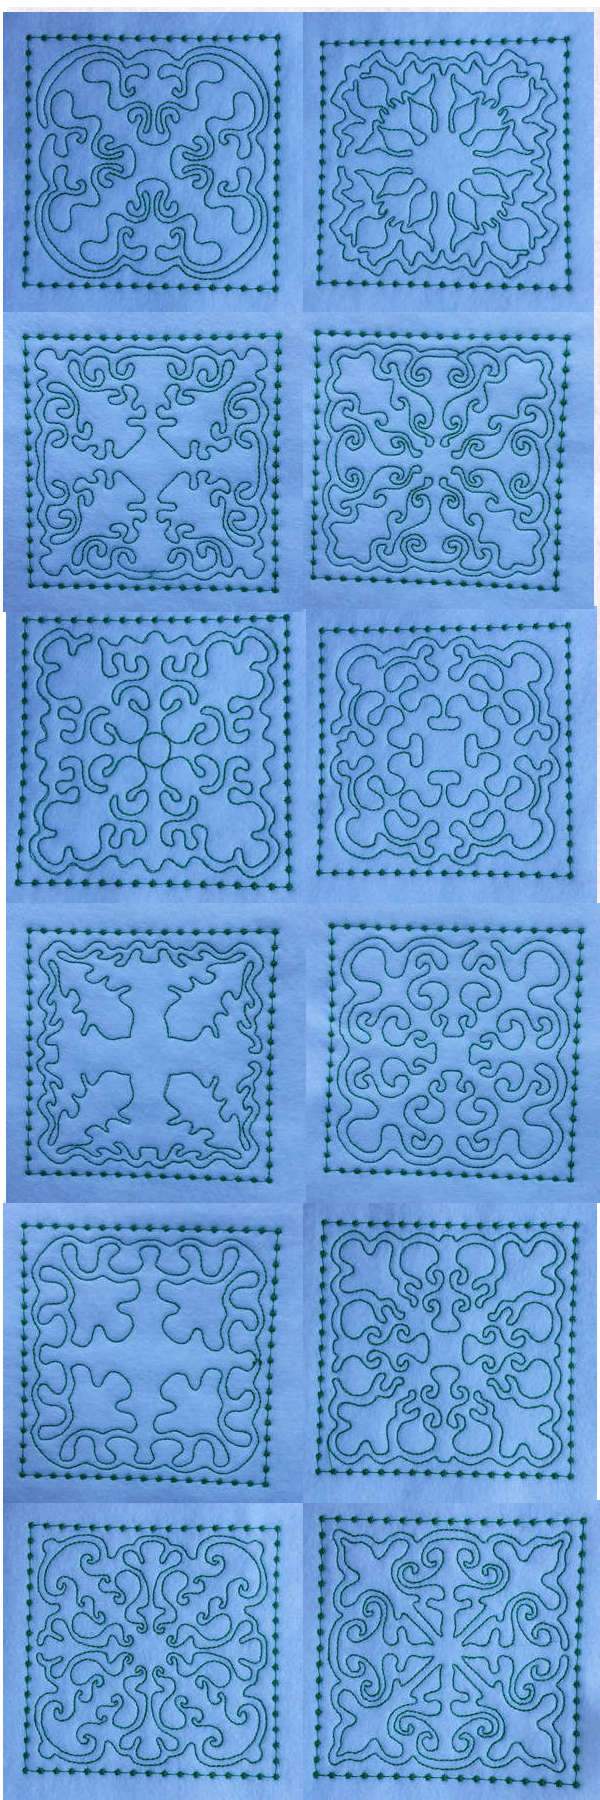 Candlewick Dreams Quilt Blocks Embroidery Machine Design Details